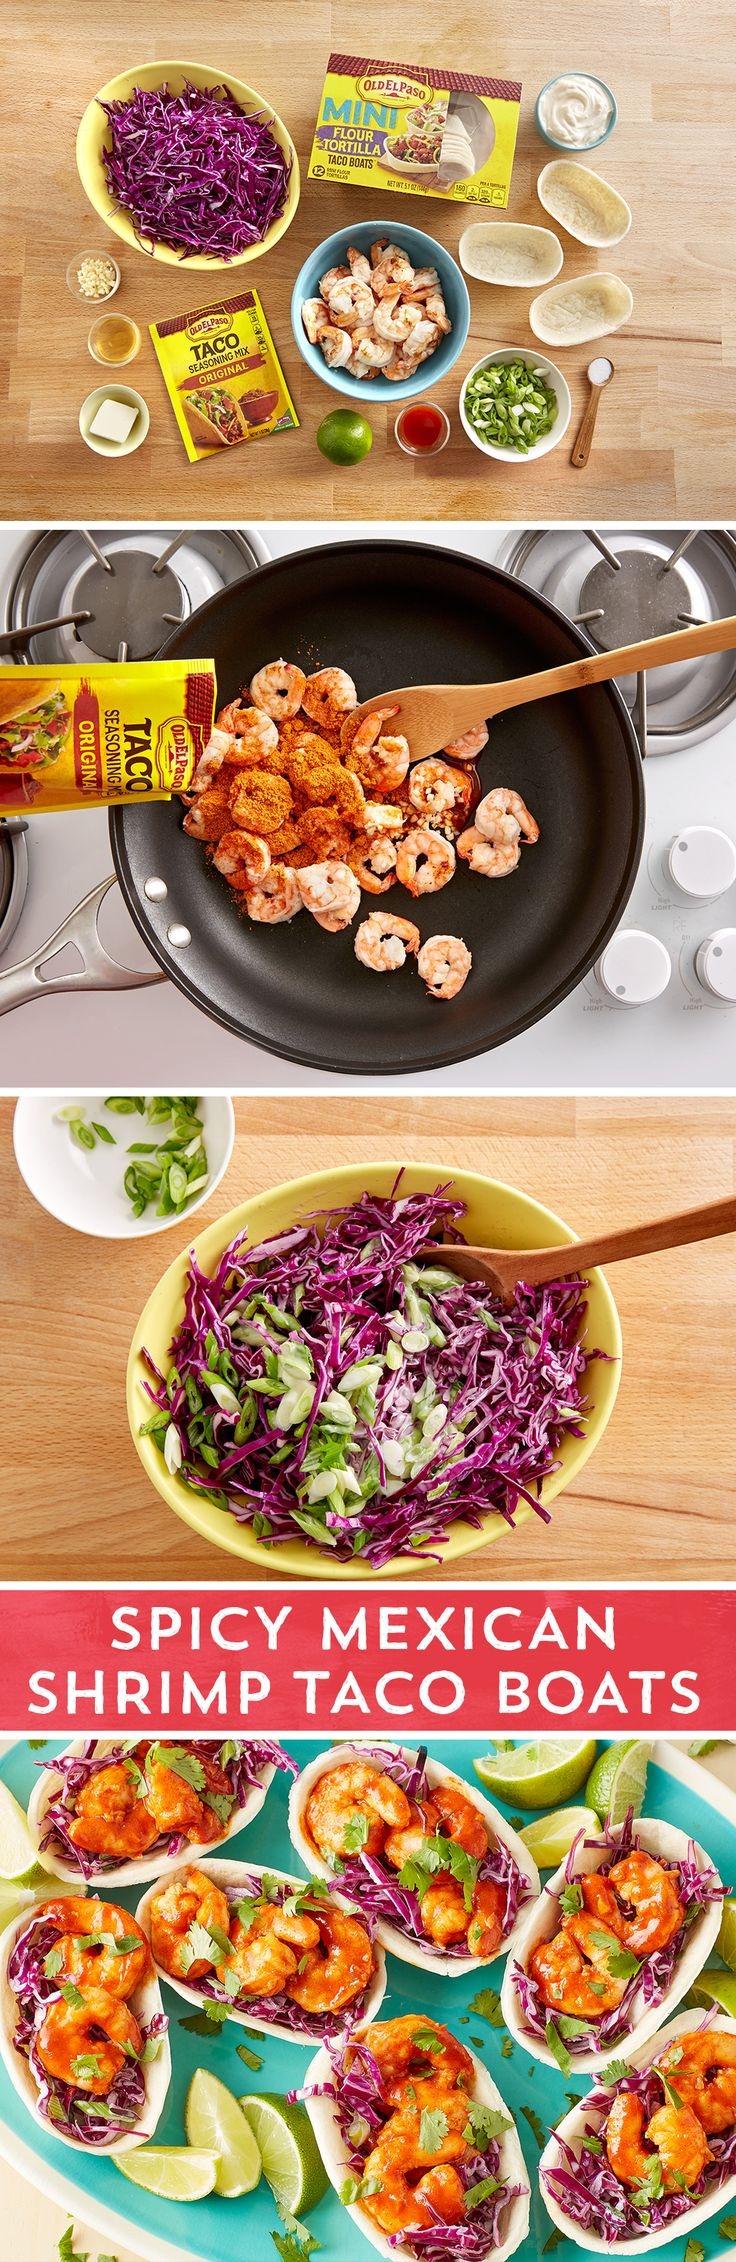 Fresh, bright, sweet and hot – this meal packs everything you love about summer into one taco boat! A beautiful purple cabbage slaw creates a slightly sweet bed for the shrimp sautéed with Old El Paso™ taco seasoning. Served in Old El Paso™ Mini Taco Boats these are perfect for any gathering.